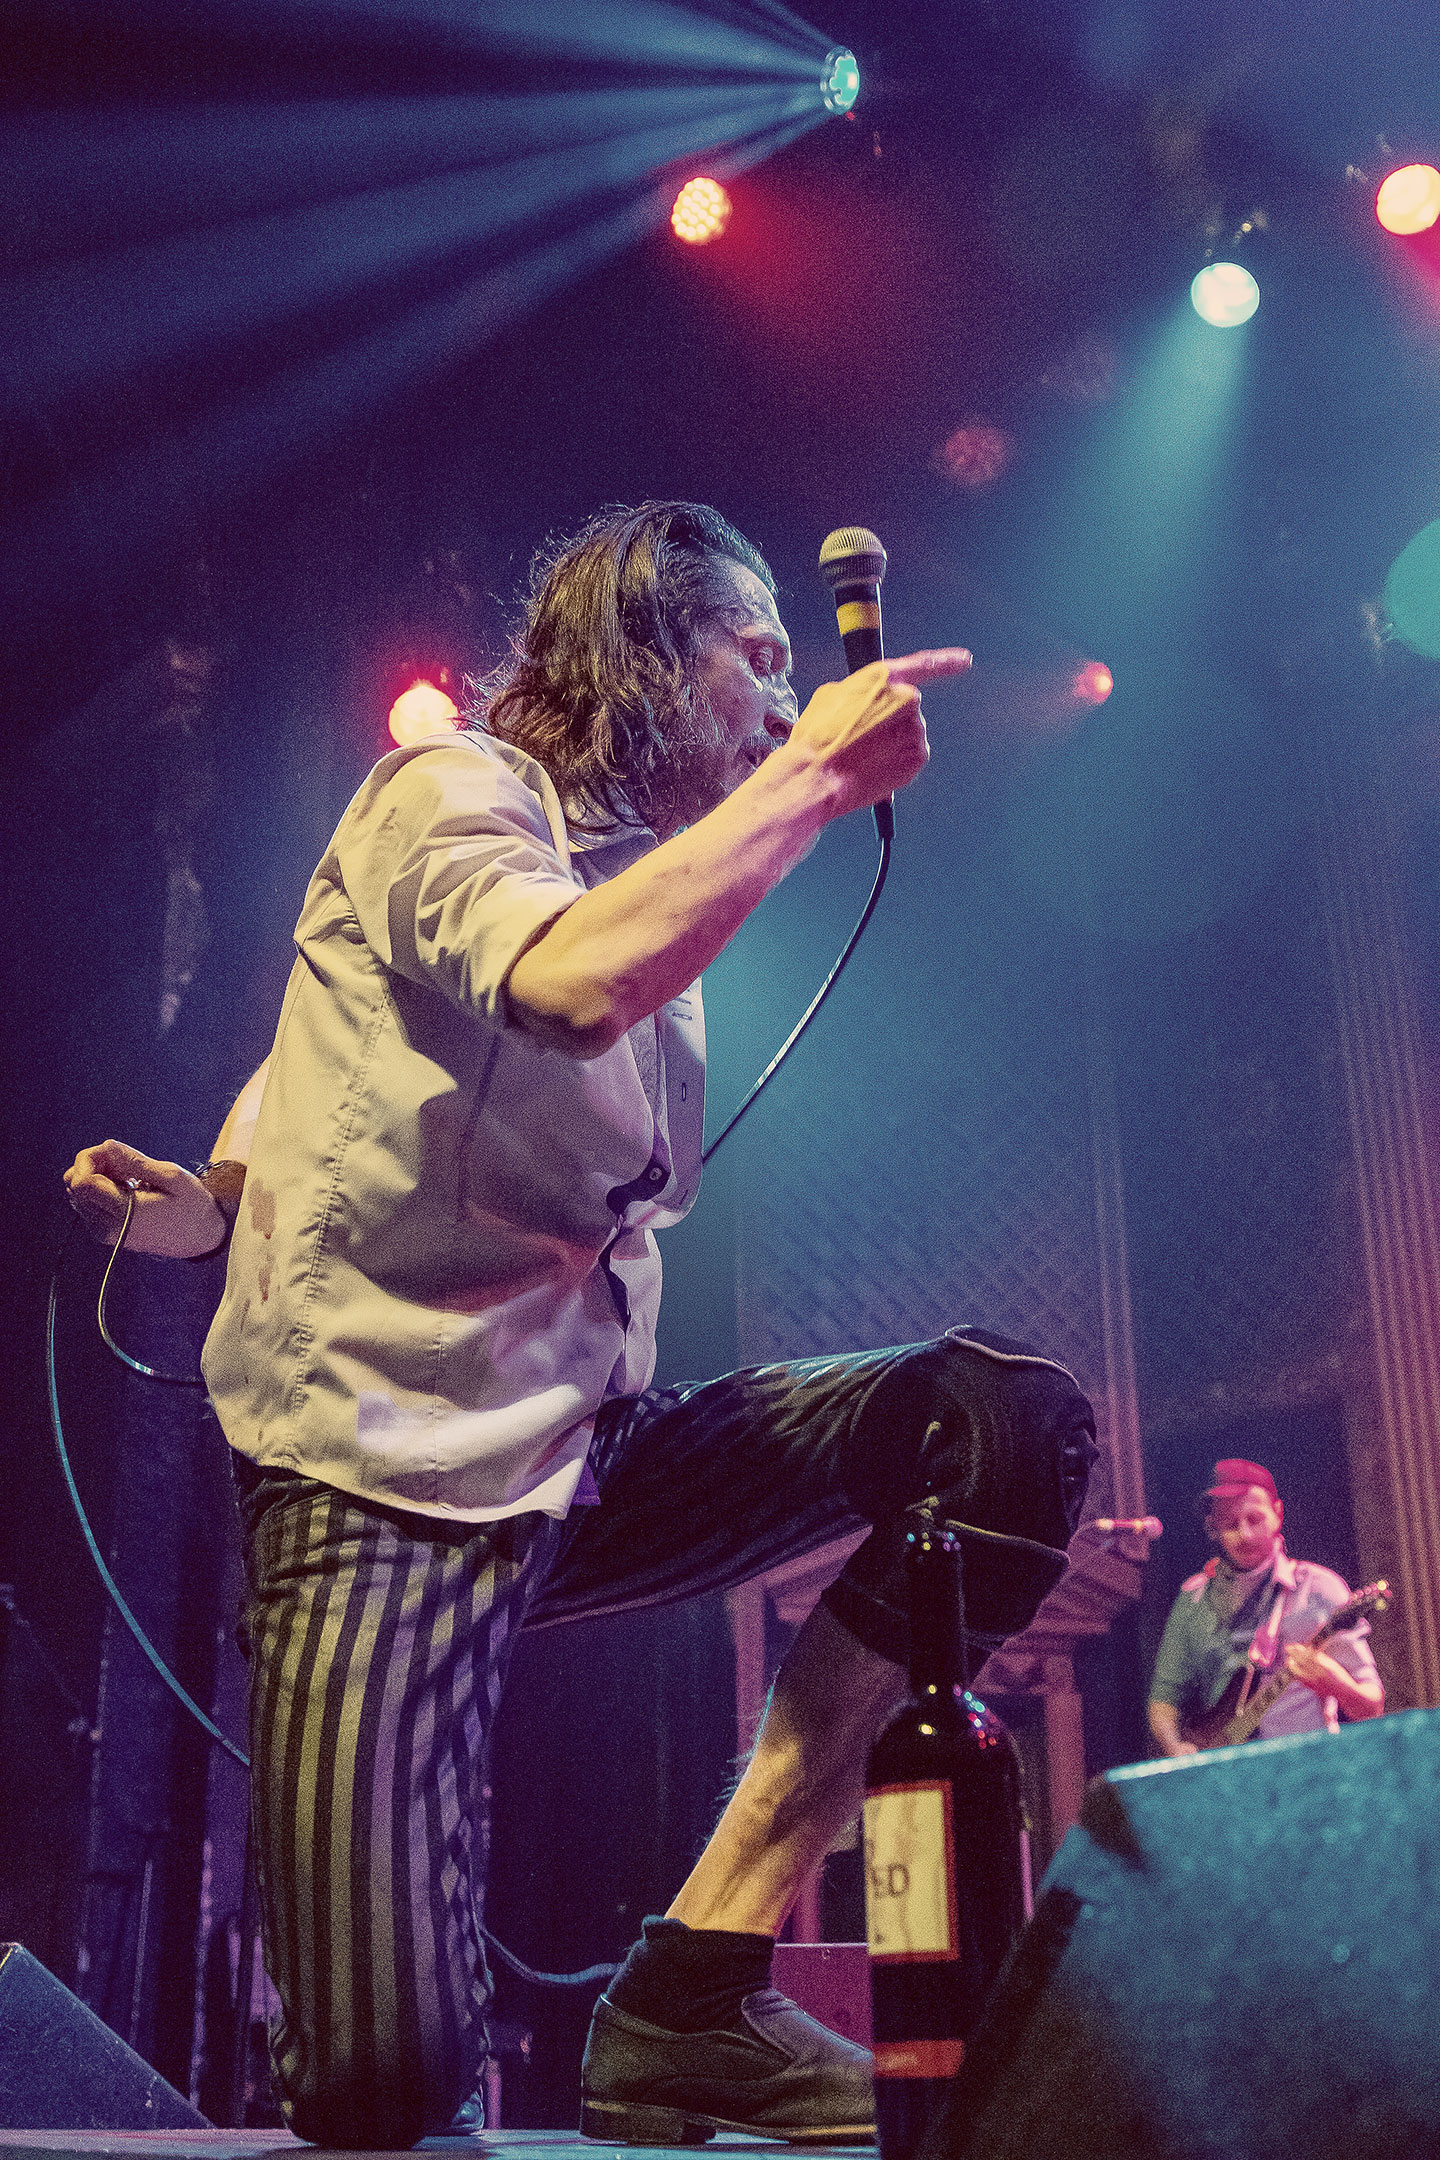 Gogol Bordello - Denver Concert Photos - Ogden Theatre